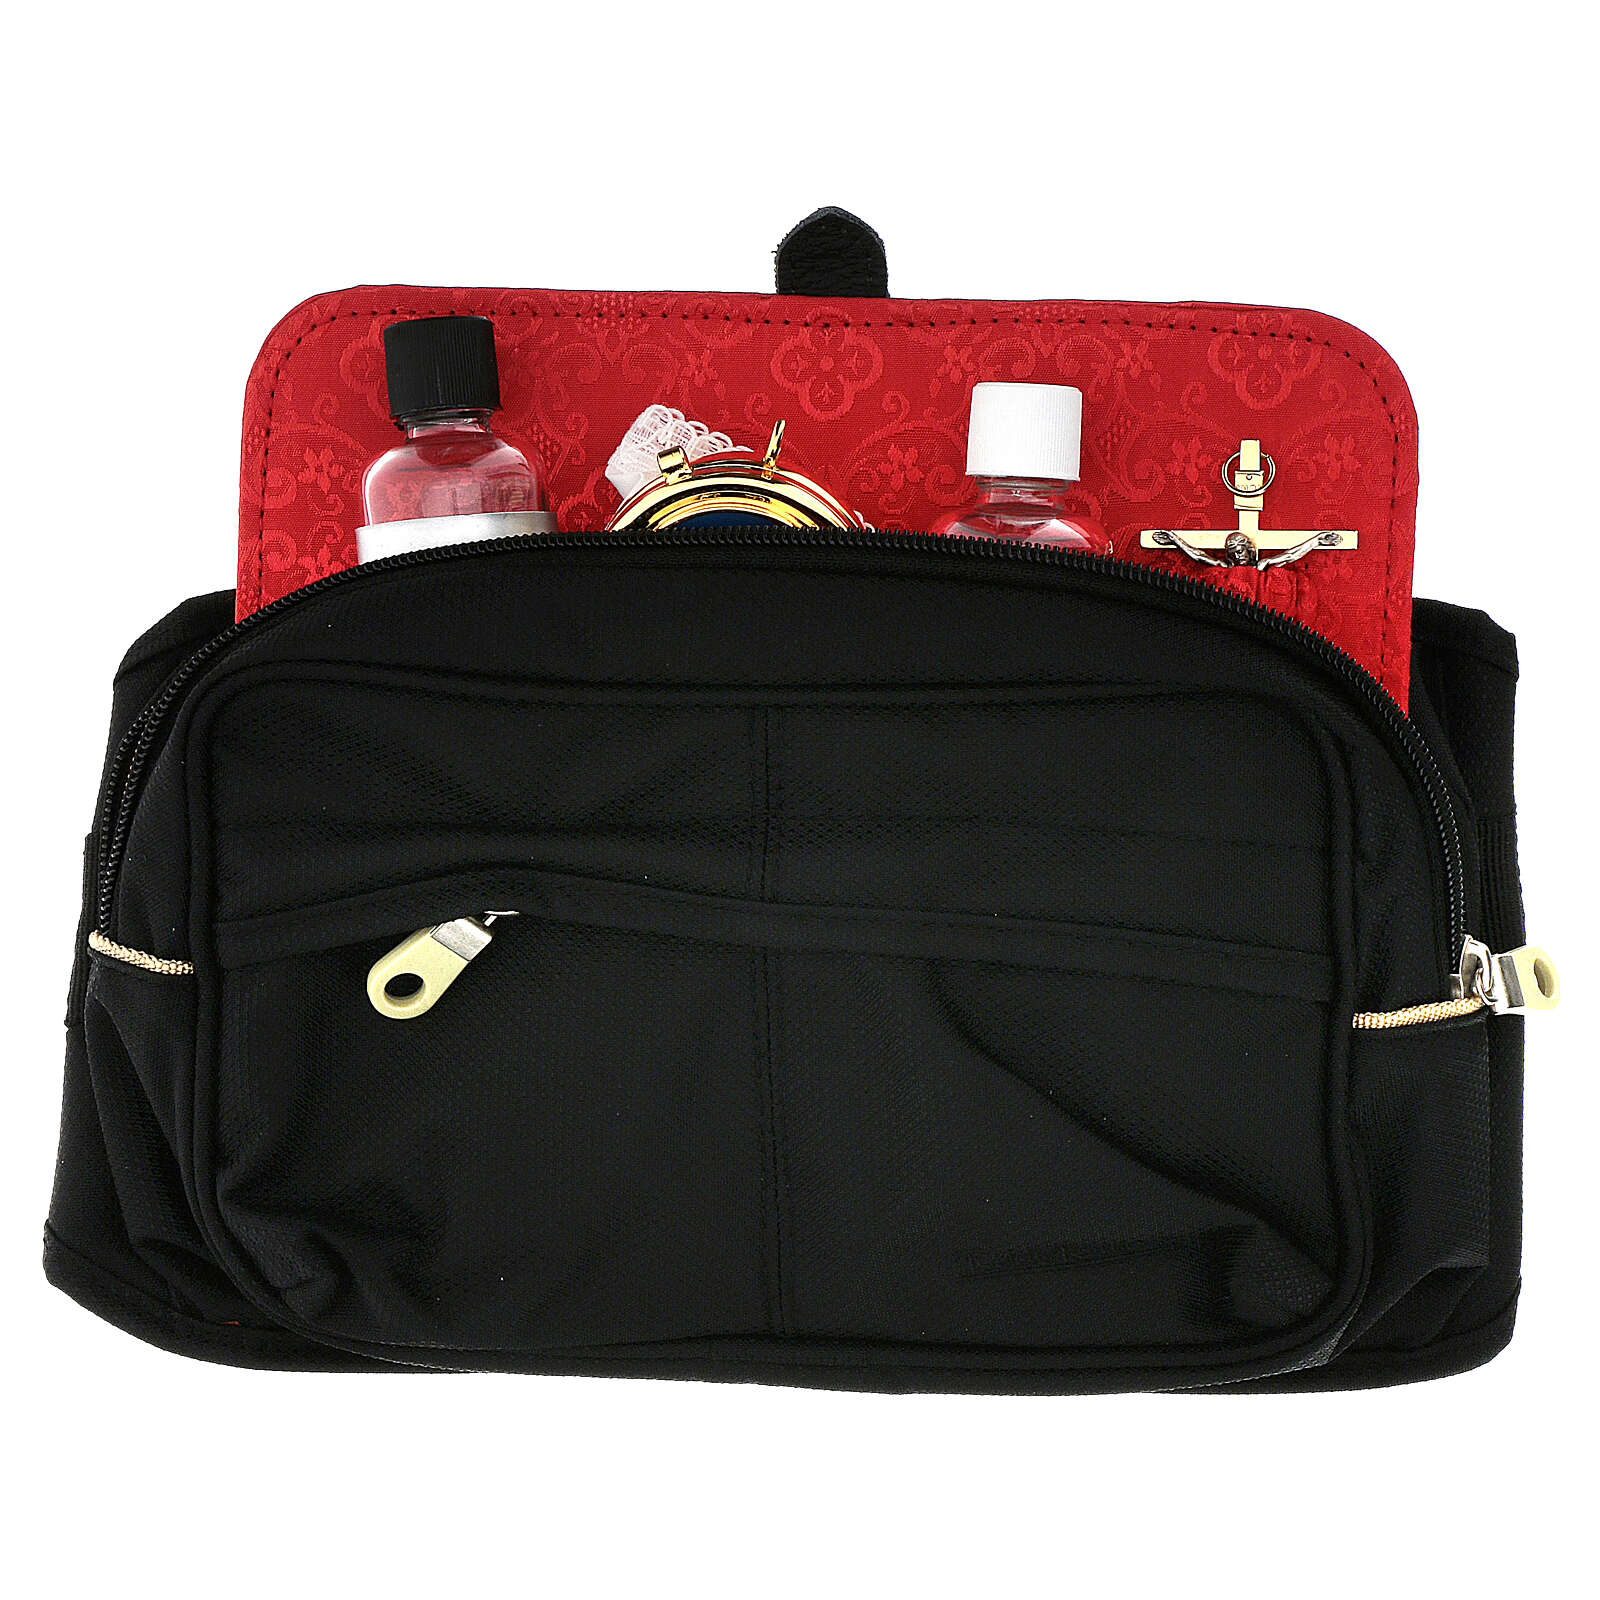 Bum bag with mass kit and red Jacquard lining 3